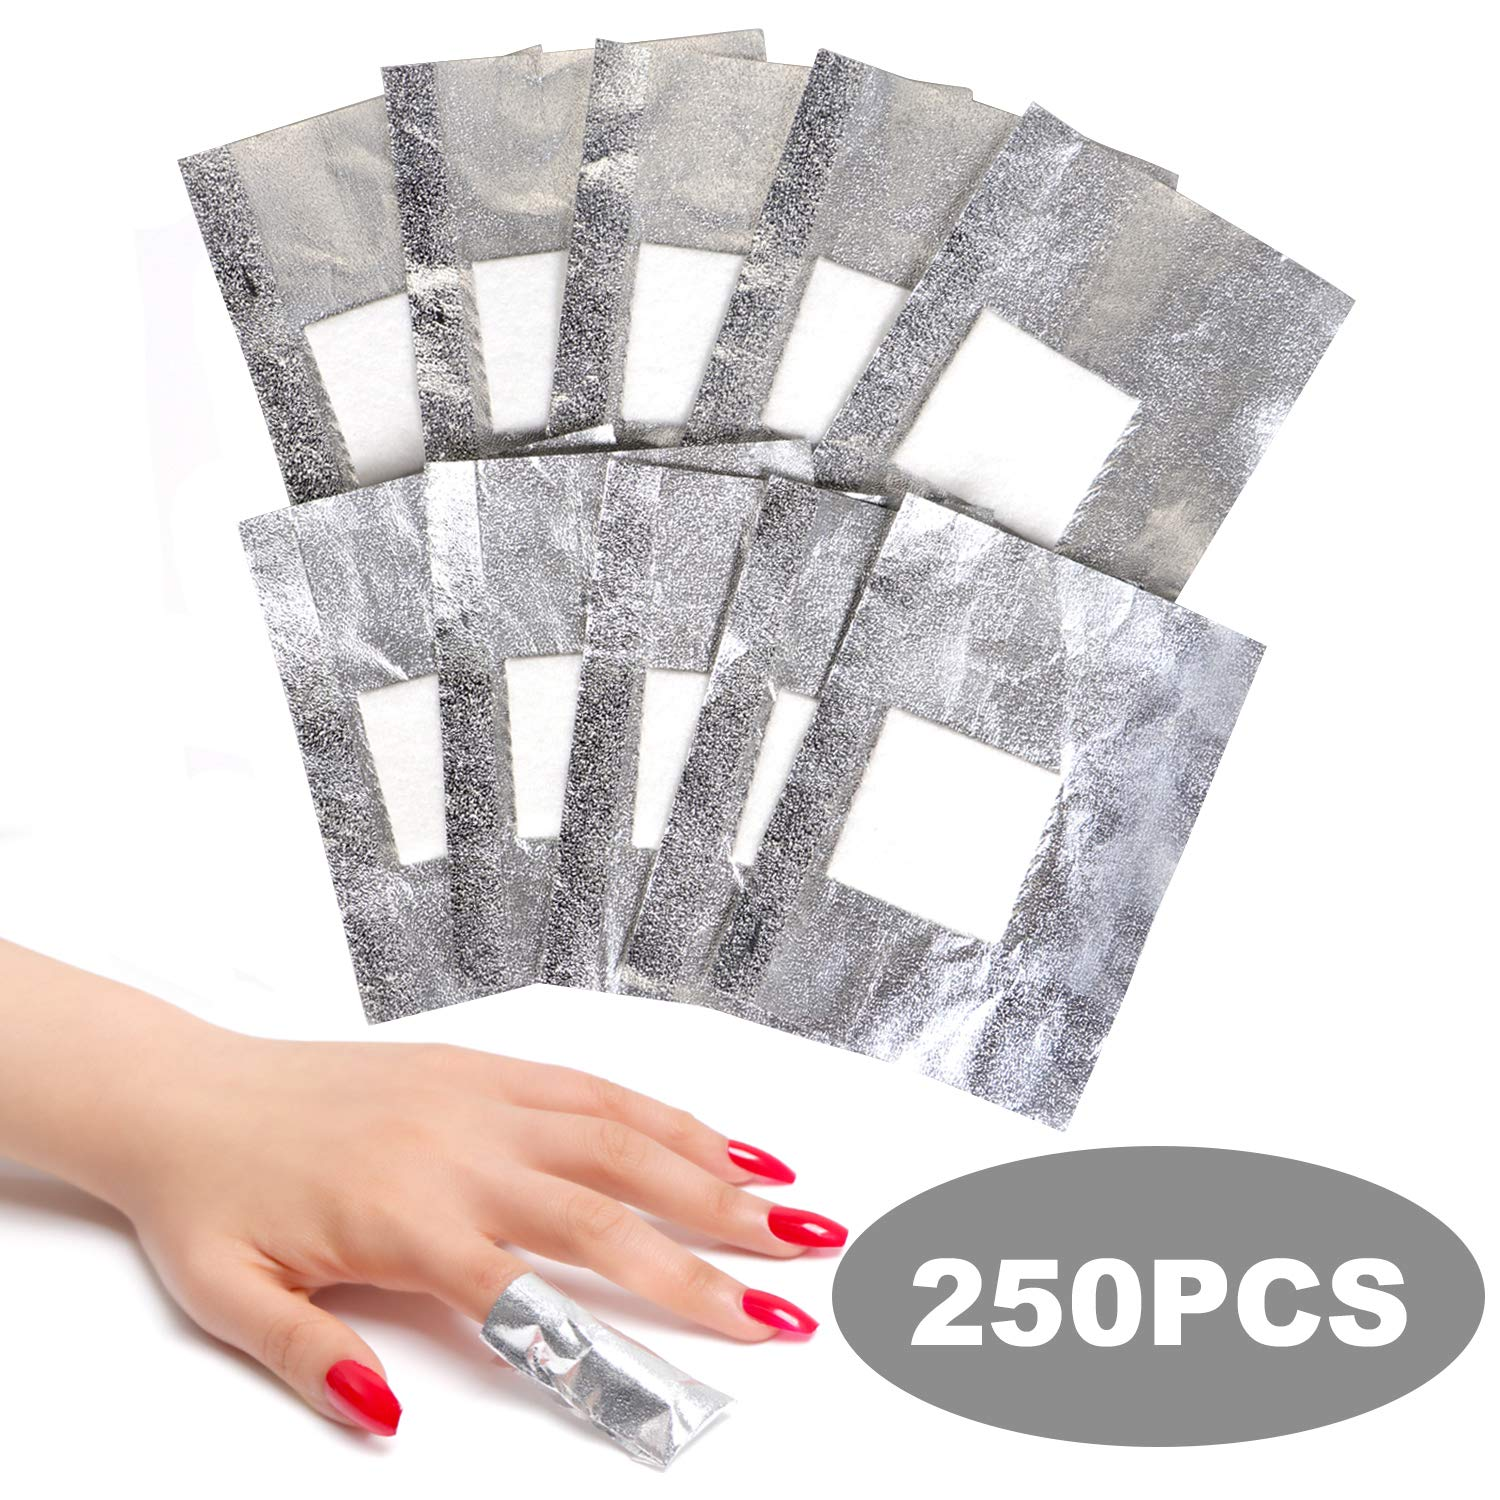 Amazon Com Ecbasket Nail Polish Remover Gel Polish Remover Soak Off Foils 250pcs Gel Nail Polish Remover Wrap Foils With Lager Cotton Pad Nail Gel Remover Tool Beauty